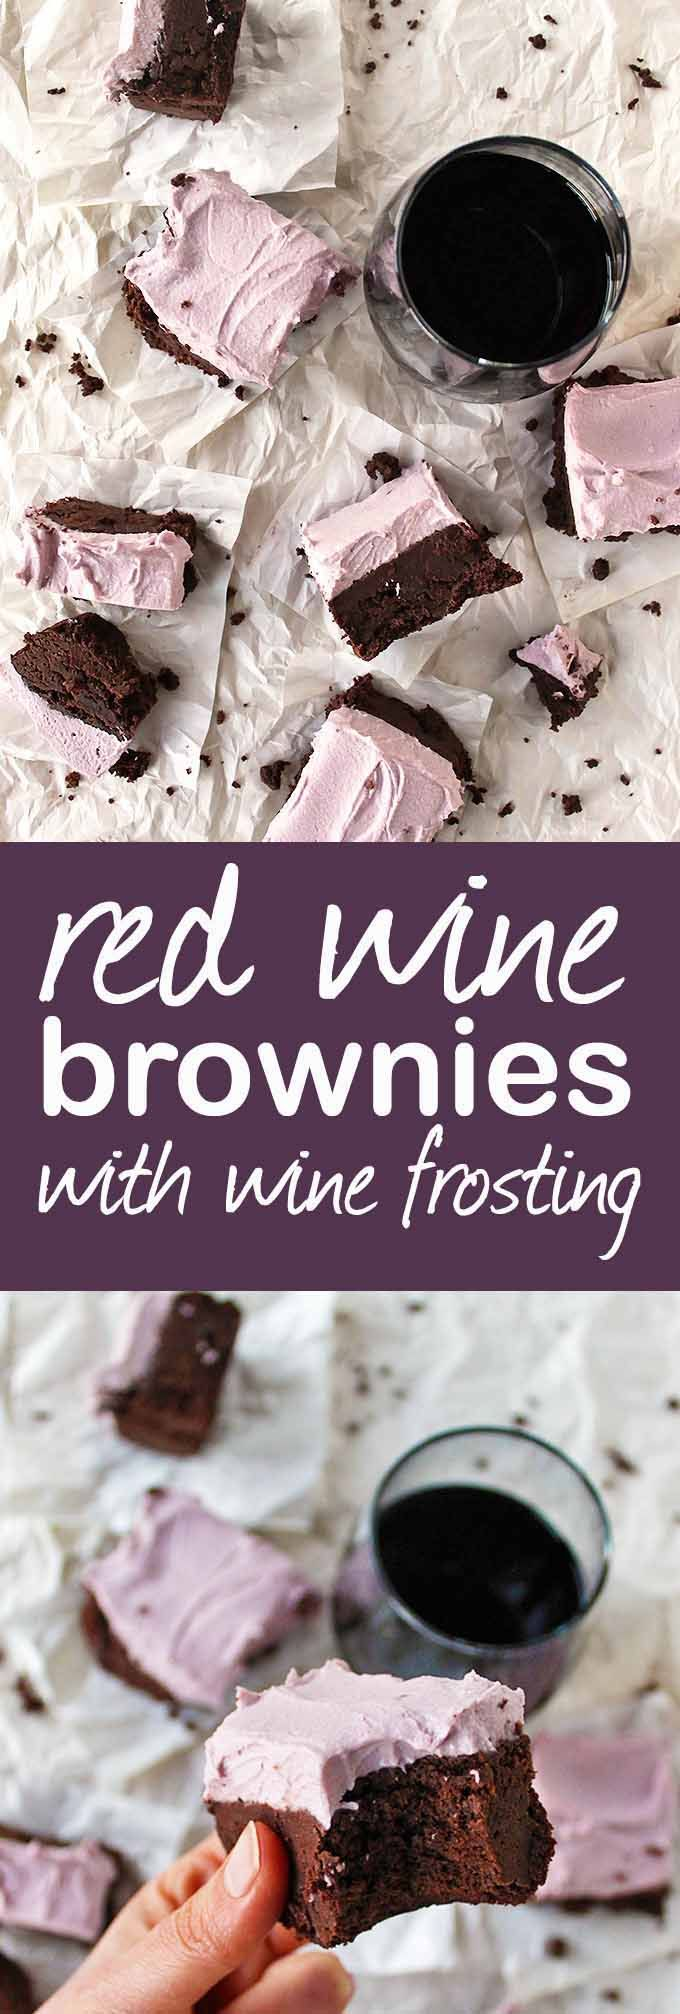 """Red wine brownies with wine """"buttercream"""" frosting - Fudge-y gluten free brownies with a hint of red wine and topped with wine """"buttercream"""" frosting. Perfect dessert for any special occasion. Best served with some red wine! So Yum!!!! (Gluten Free + Dairy Free) 